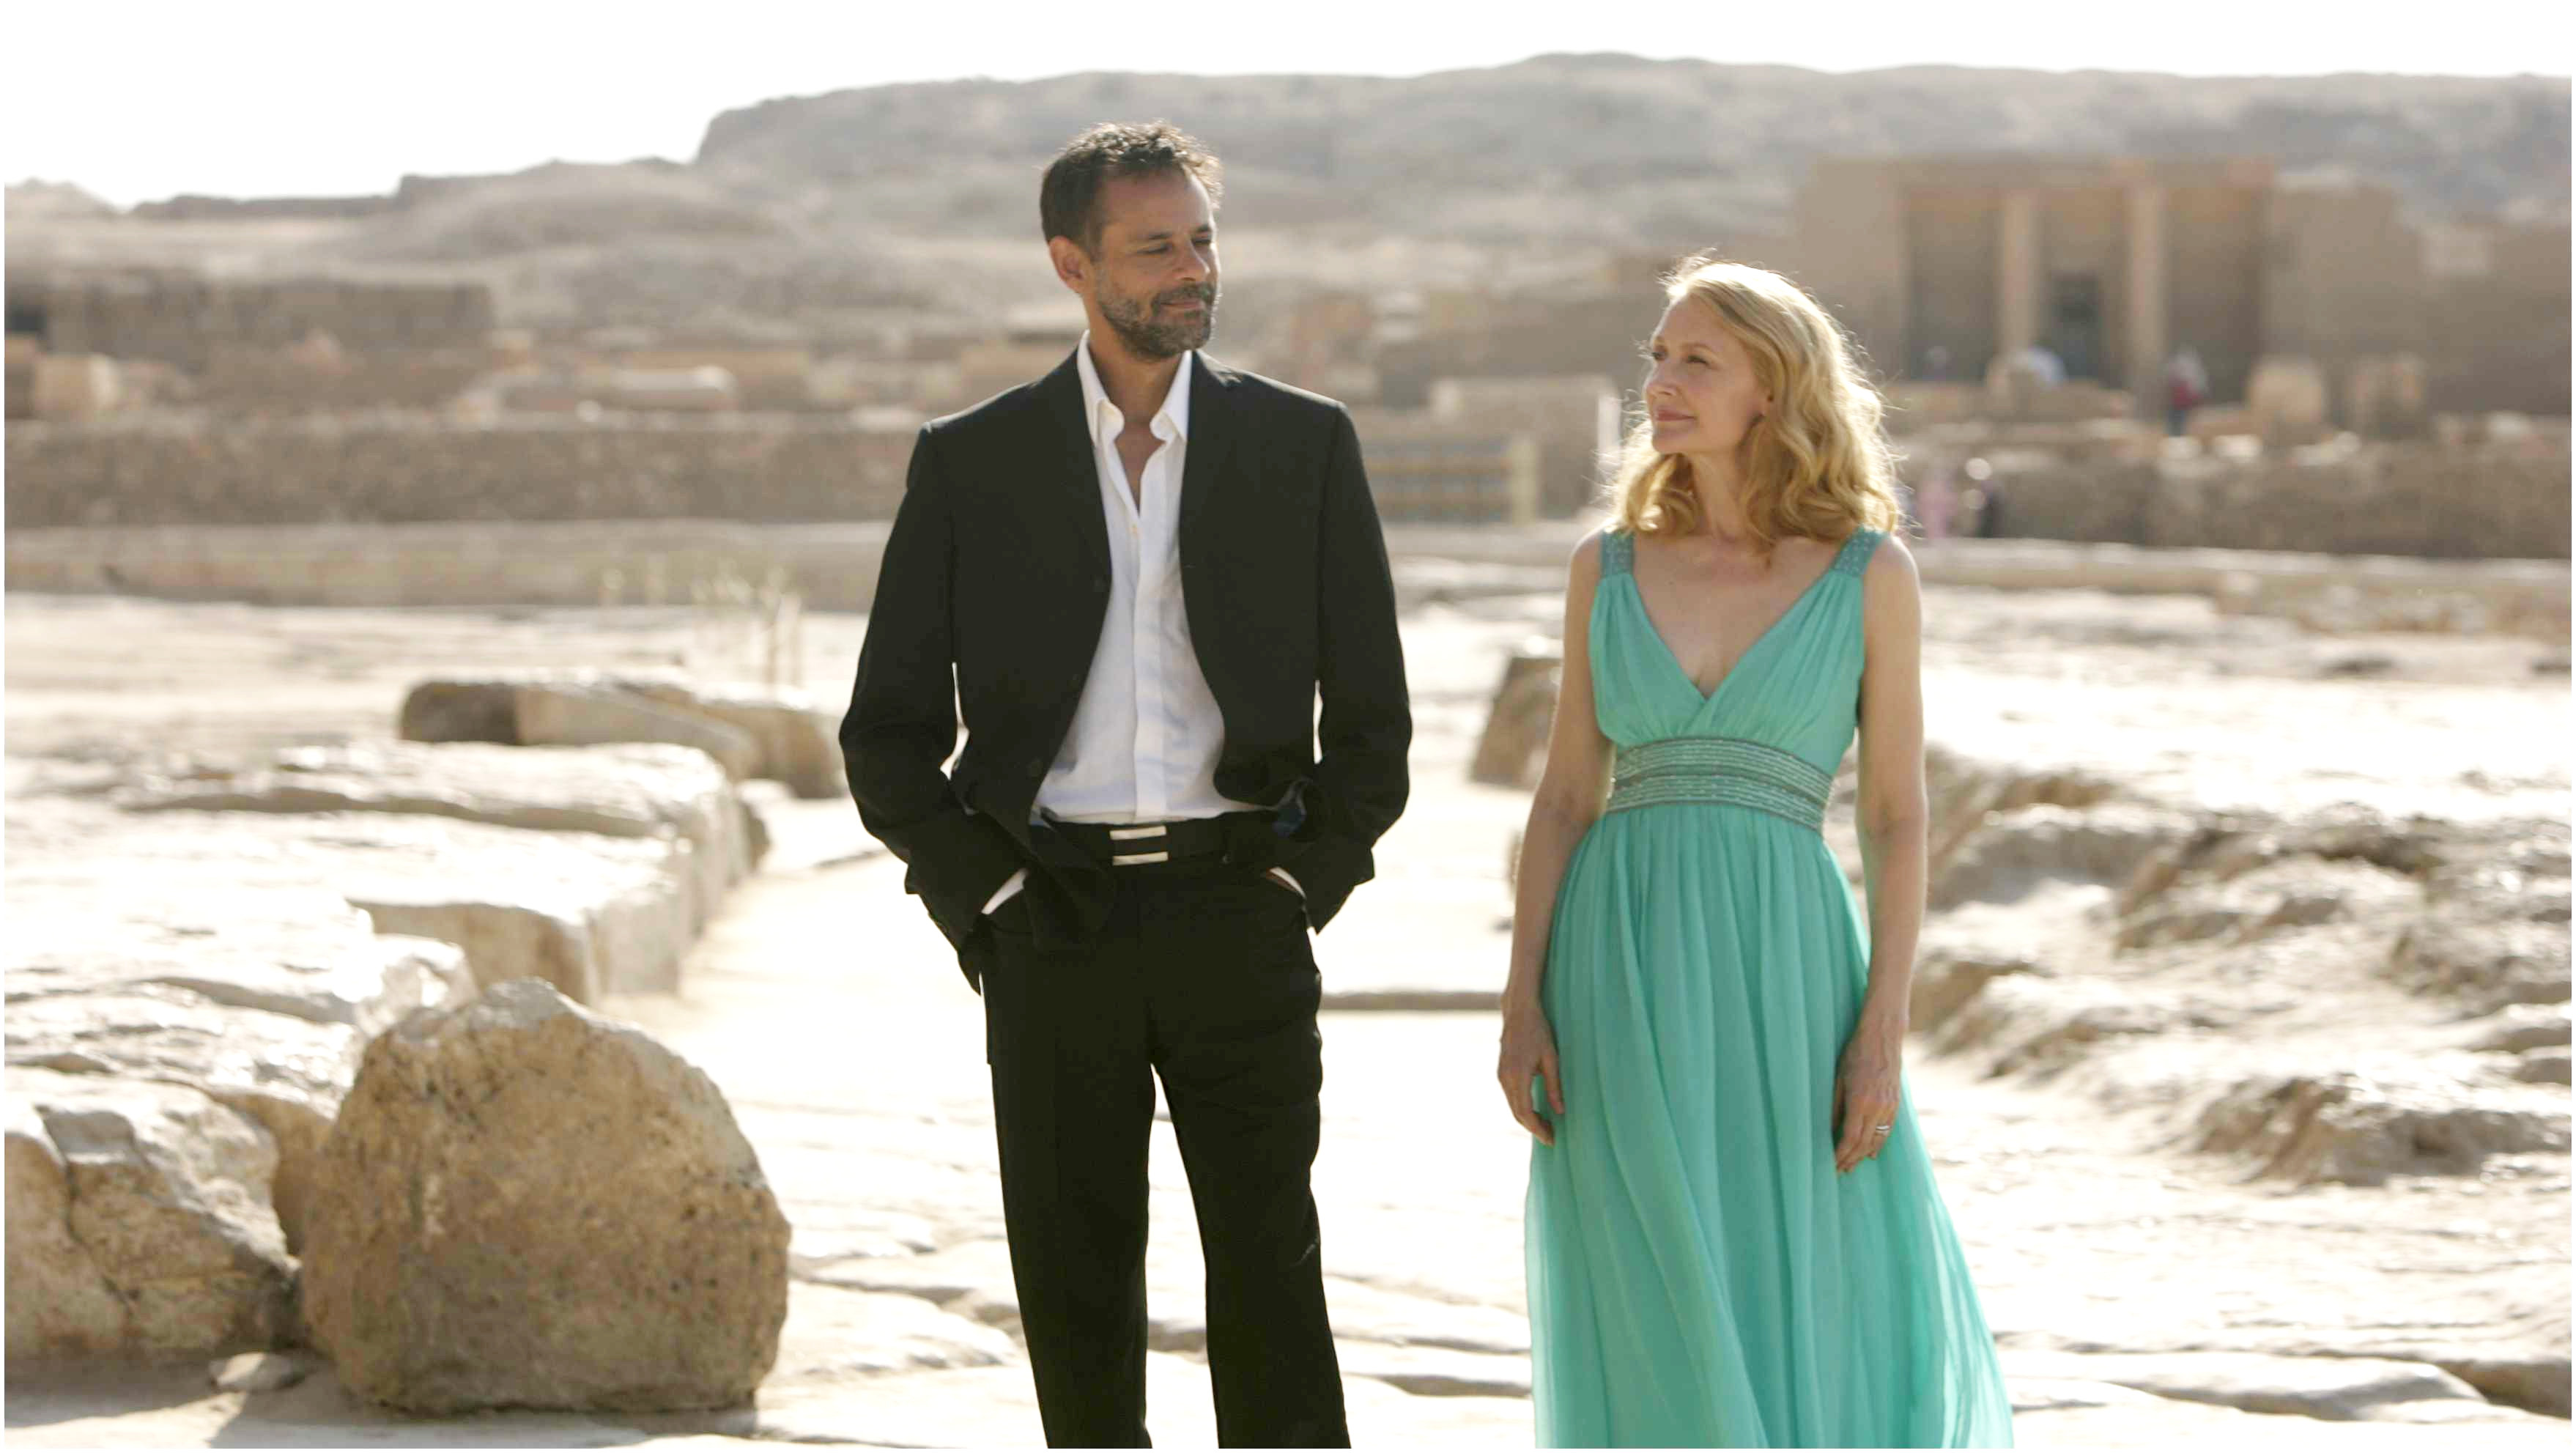 Alexander Siddig stars as Tareq Khalifa and Patricia Clarkson stars as Juliette Grant in IFC Films' Cairo Time (2010)